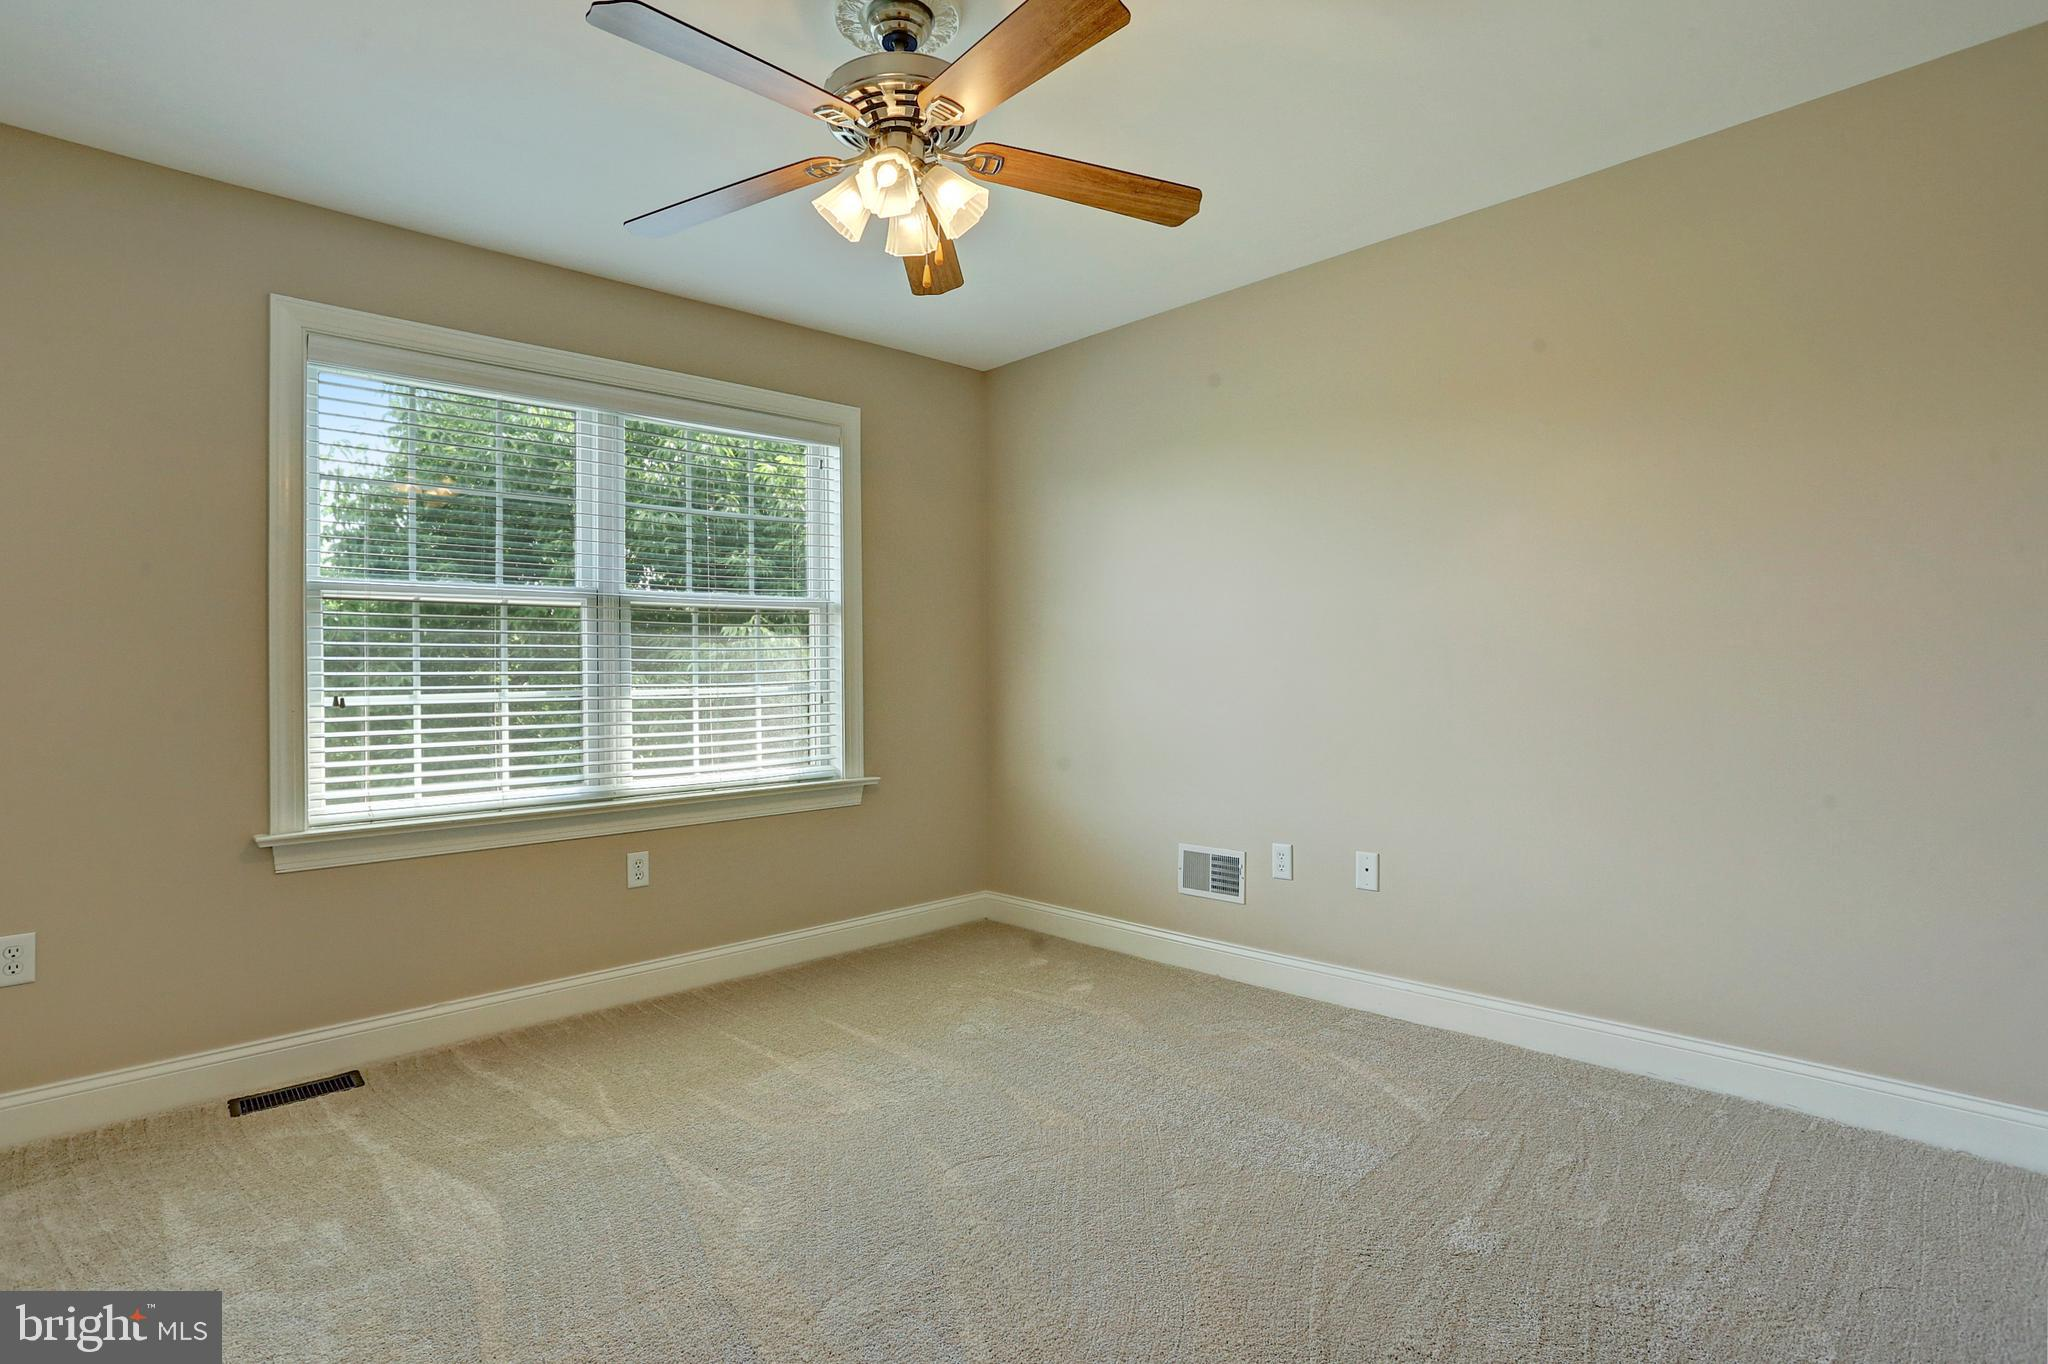 Bedroom 2 with Carpet and Ceiling Fan